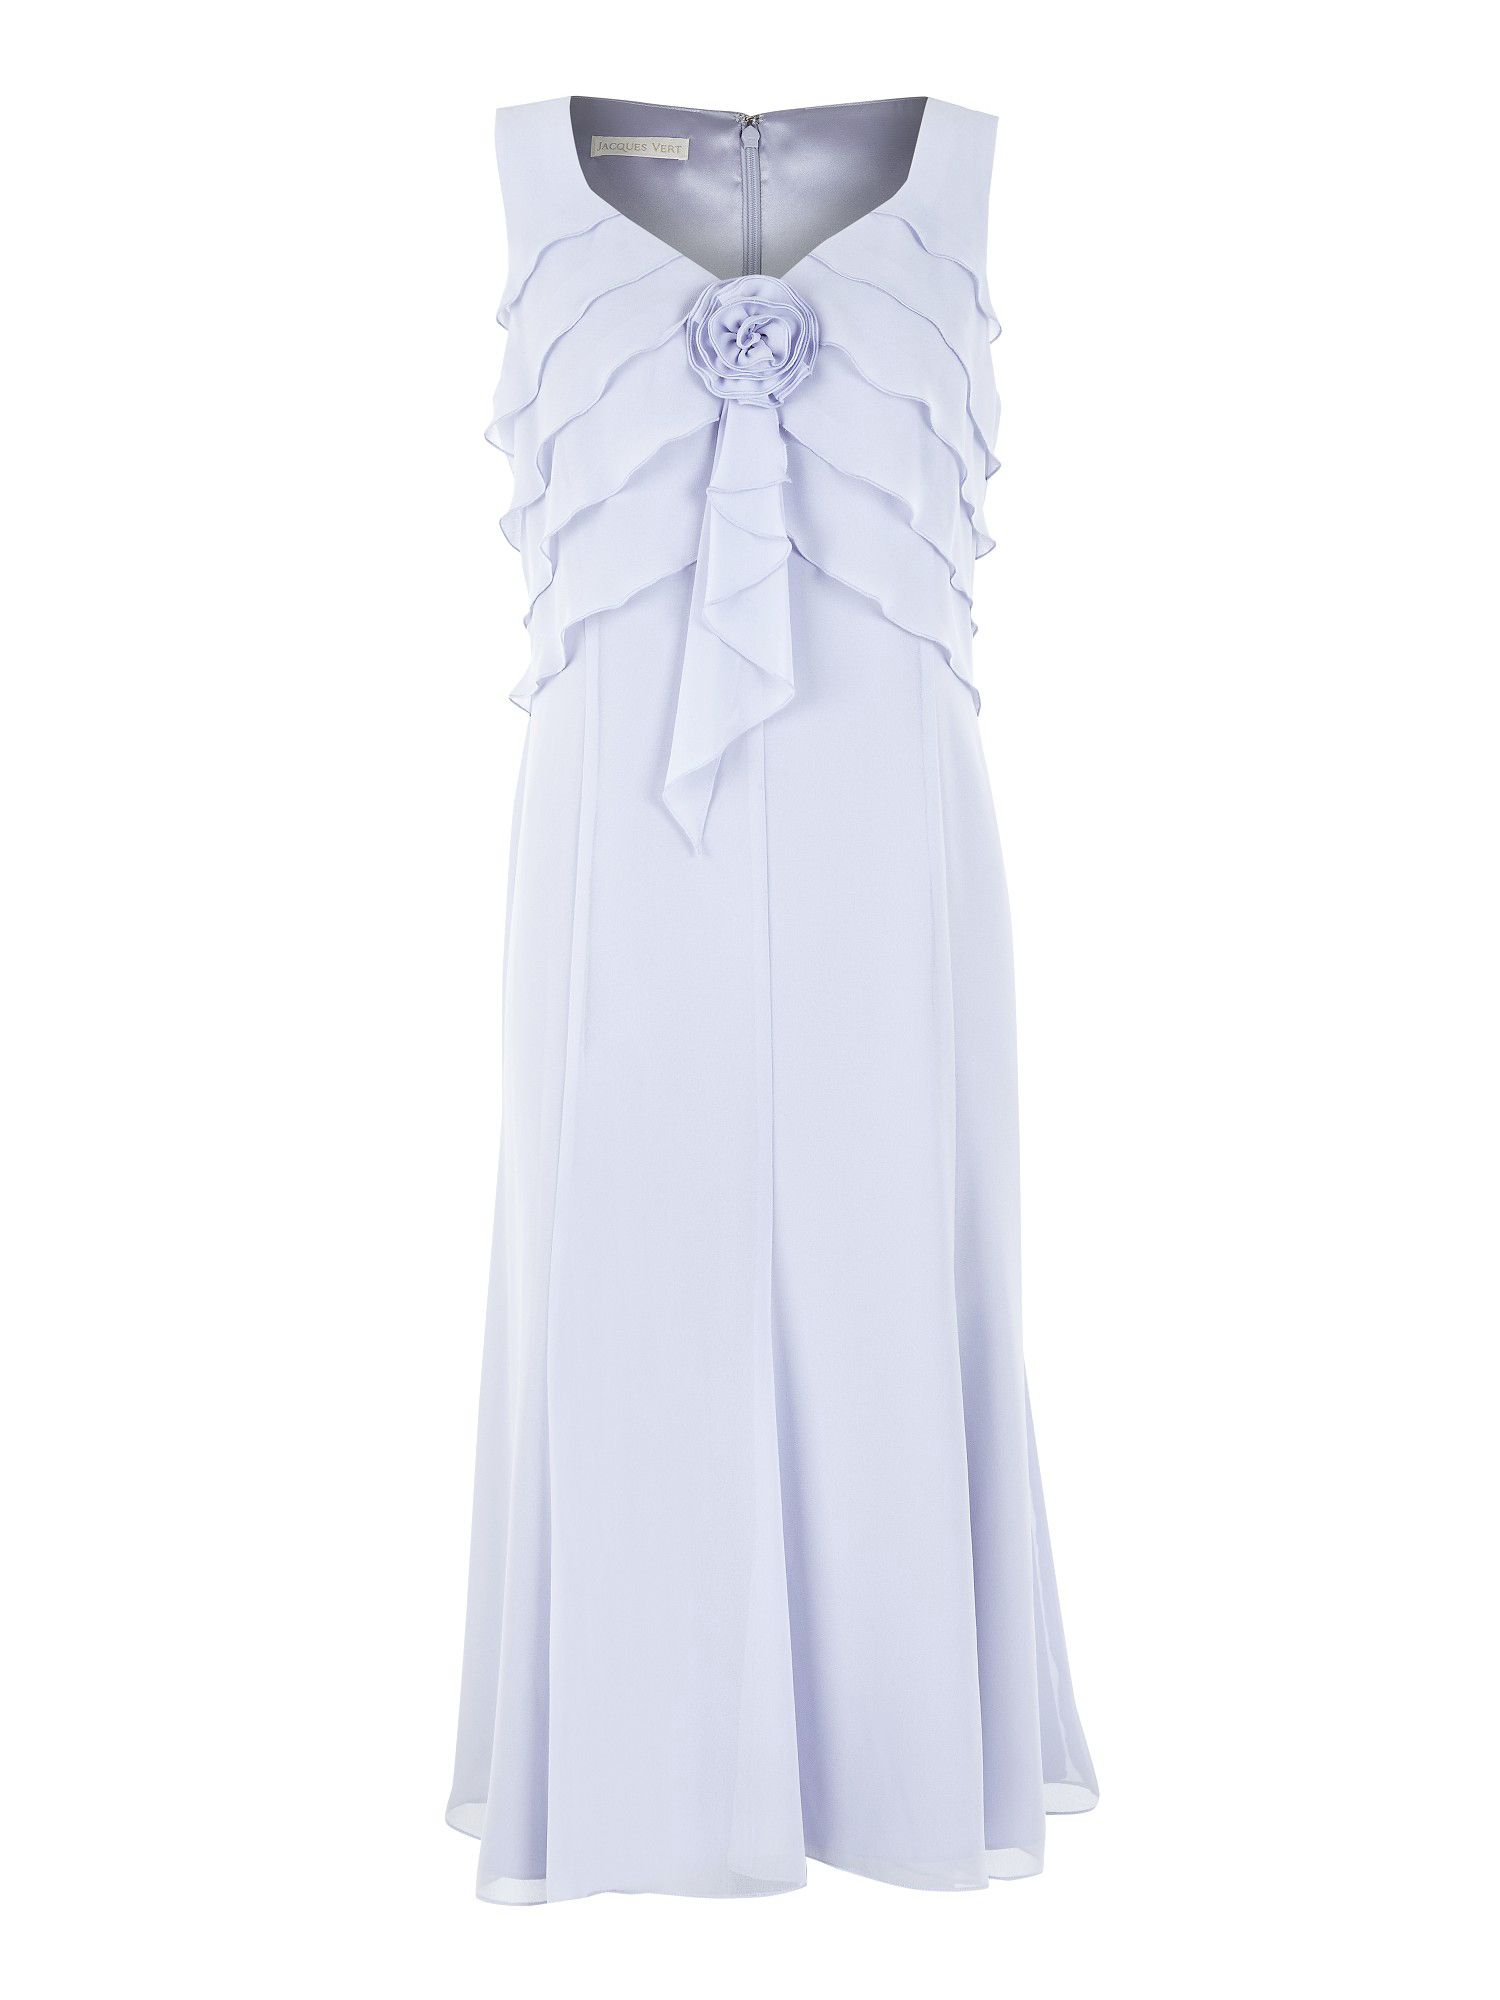 Lilac chiffon layer corsage dress